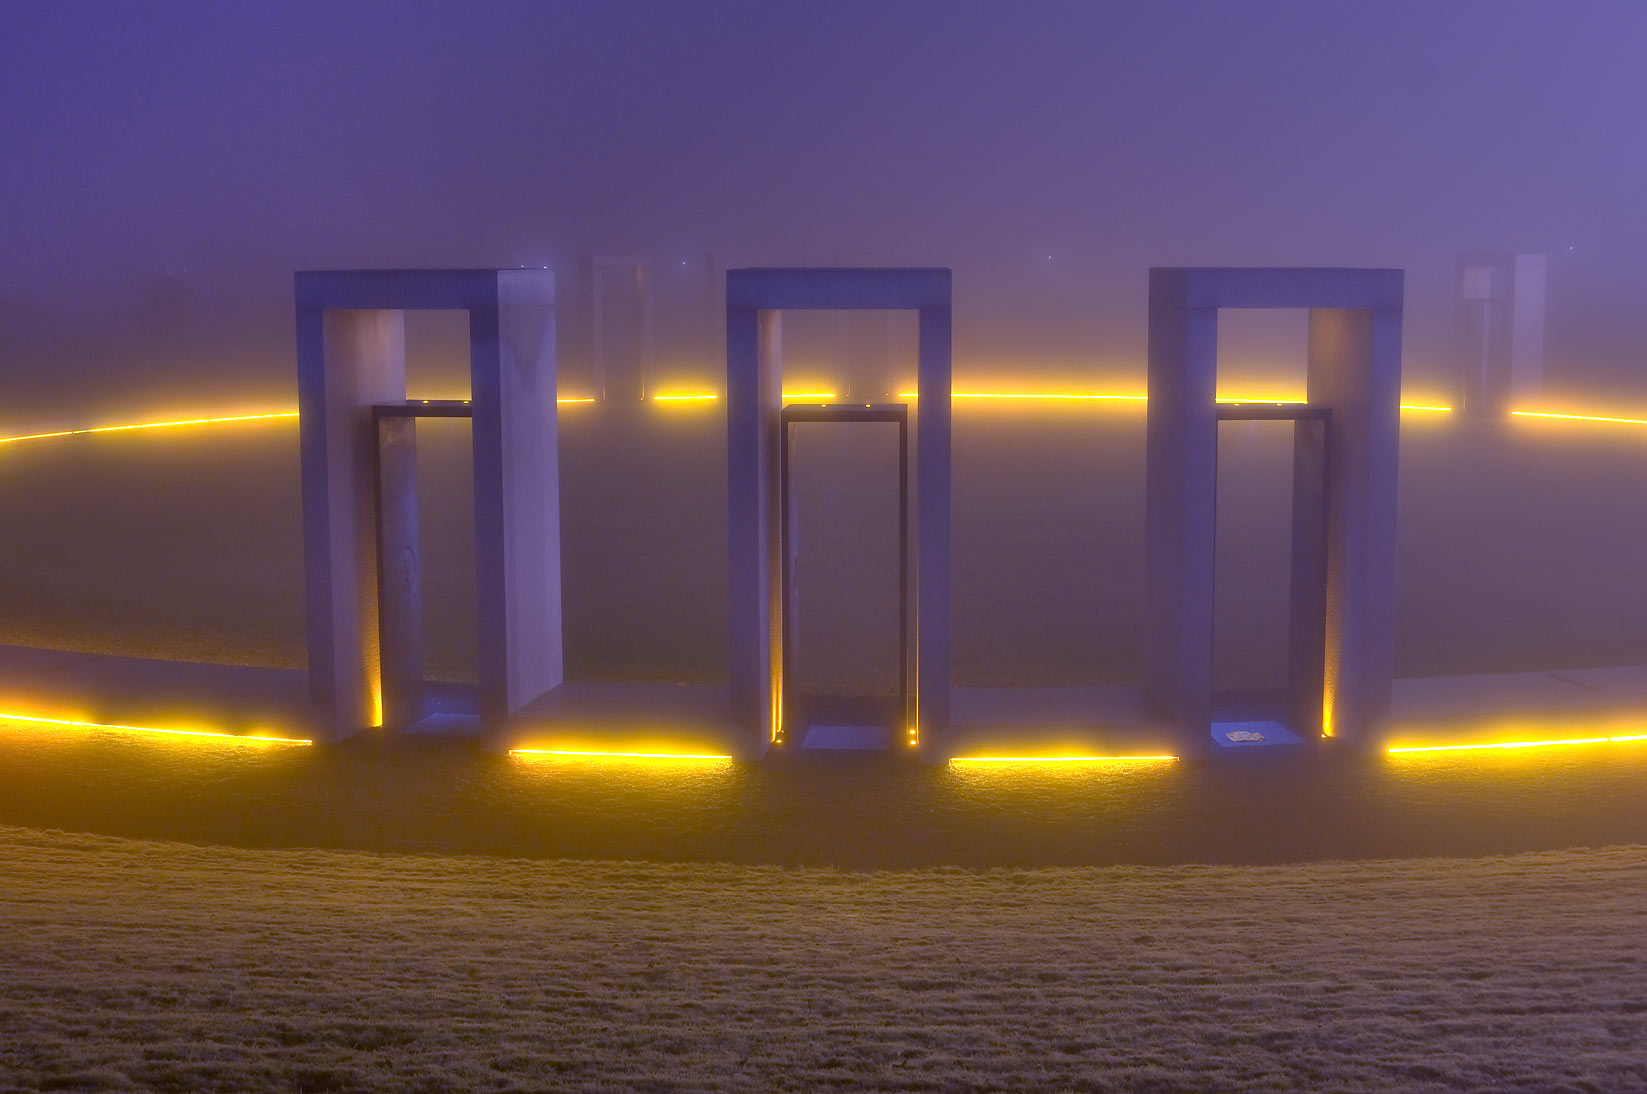 Bonfire Memorial in fog on campus of Texas A&M University. College Station, Texas